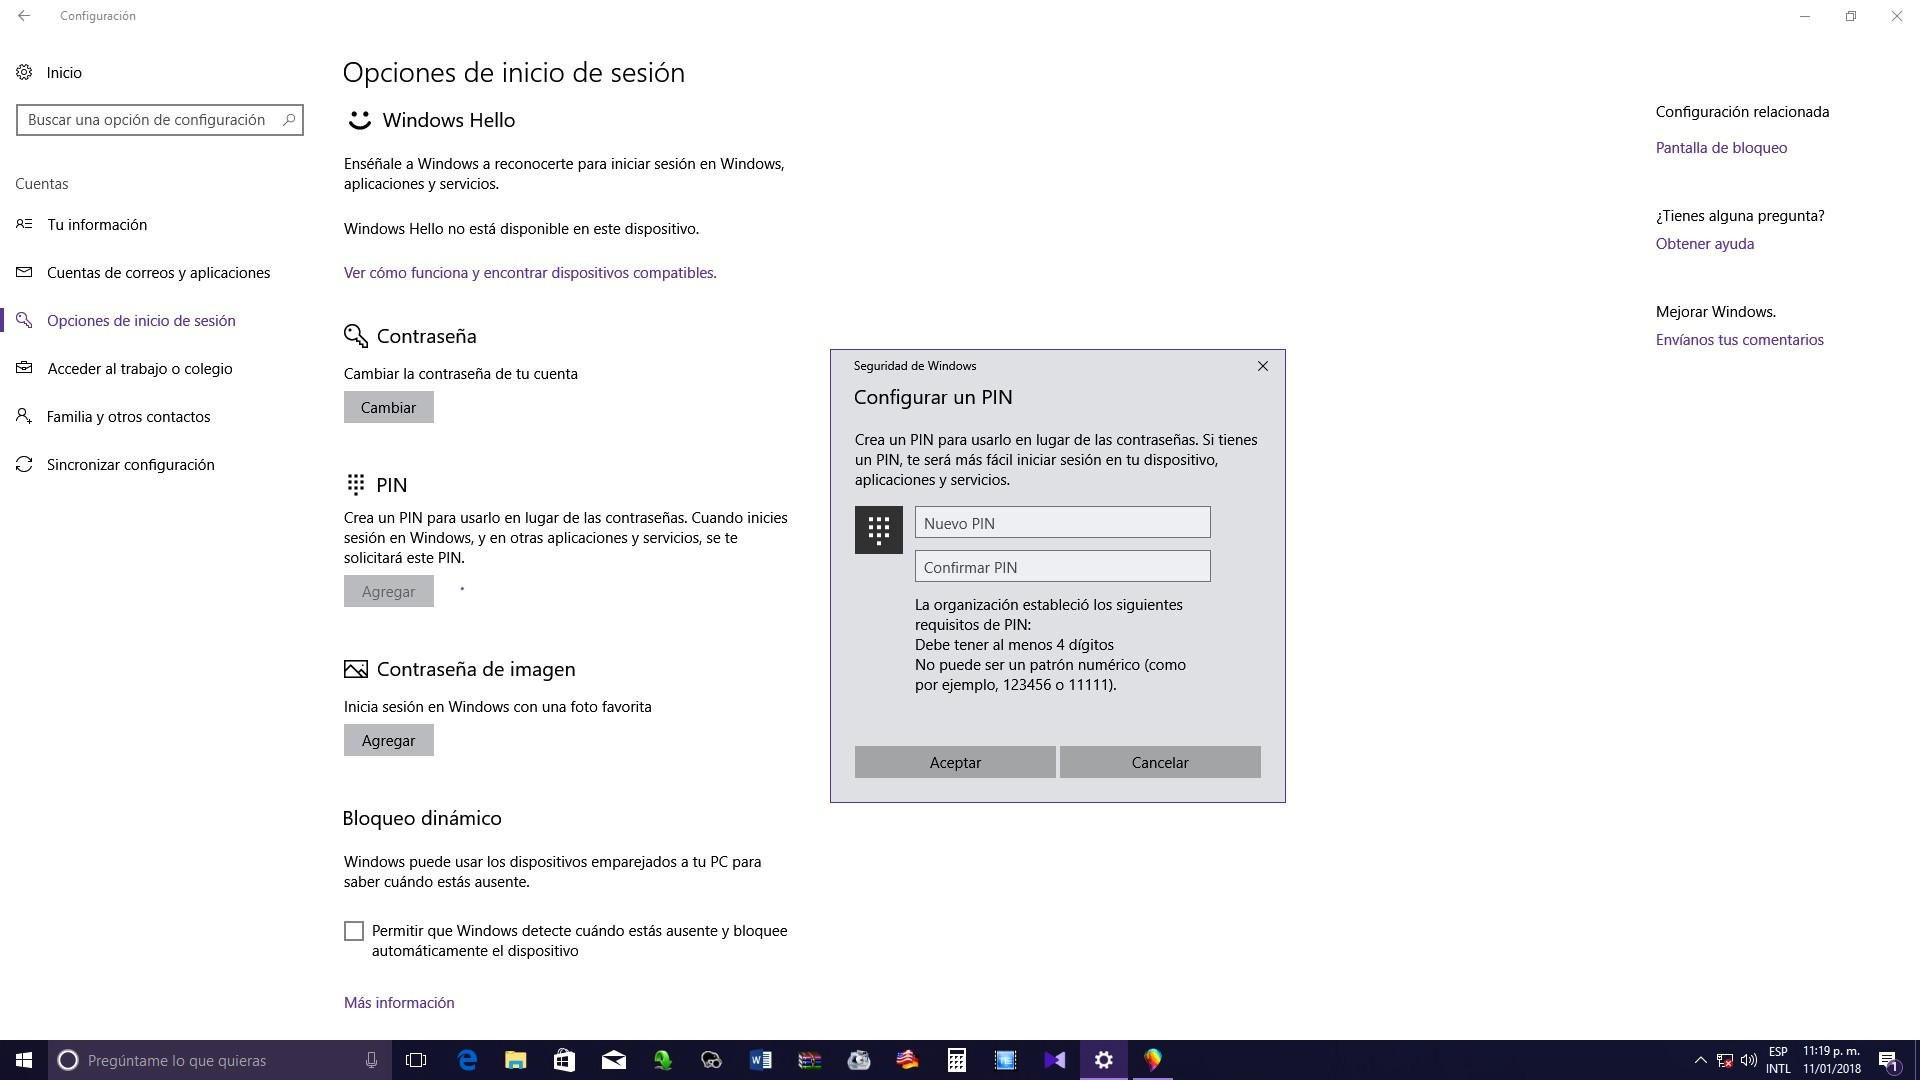 PIN en Windows 10 - #RevistaTino